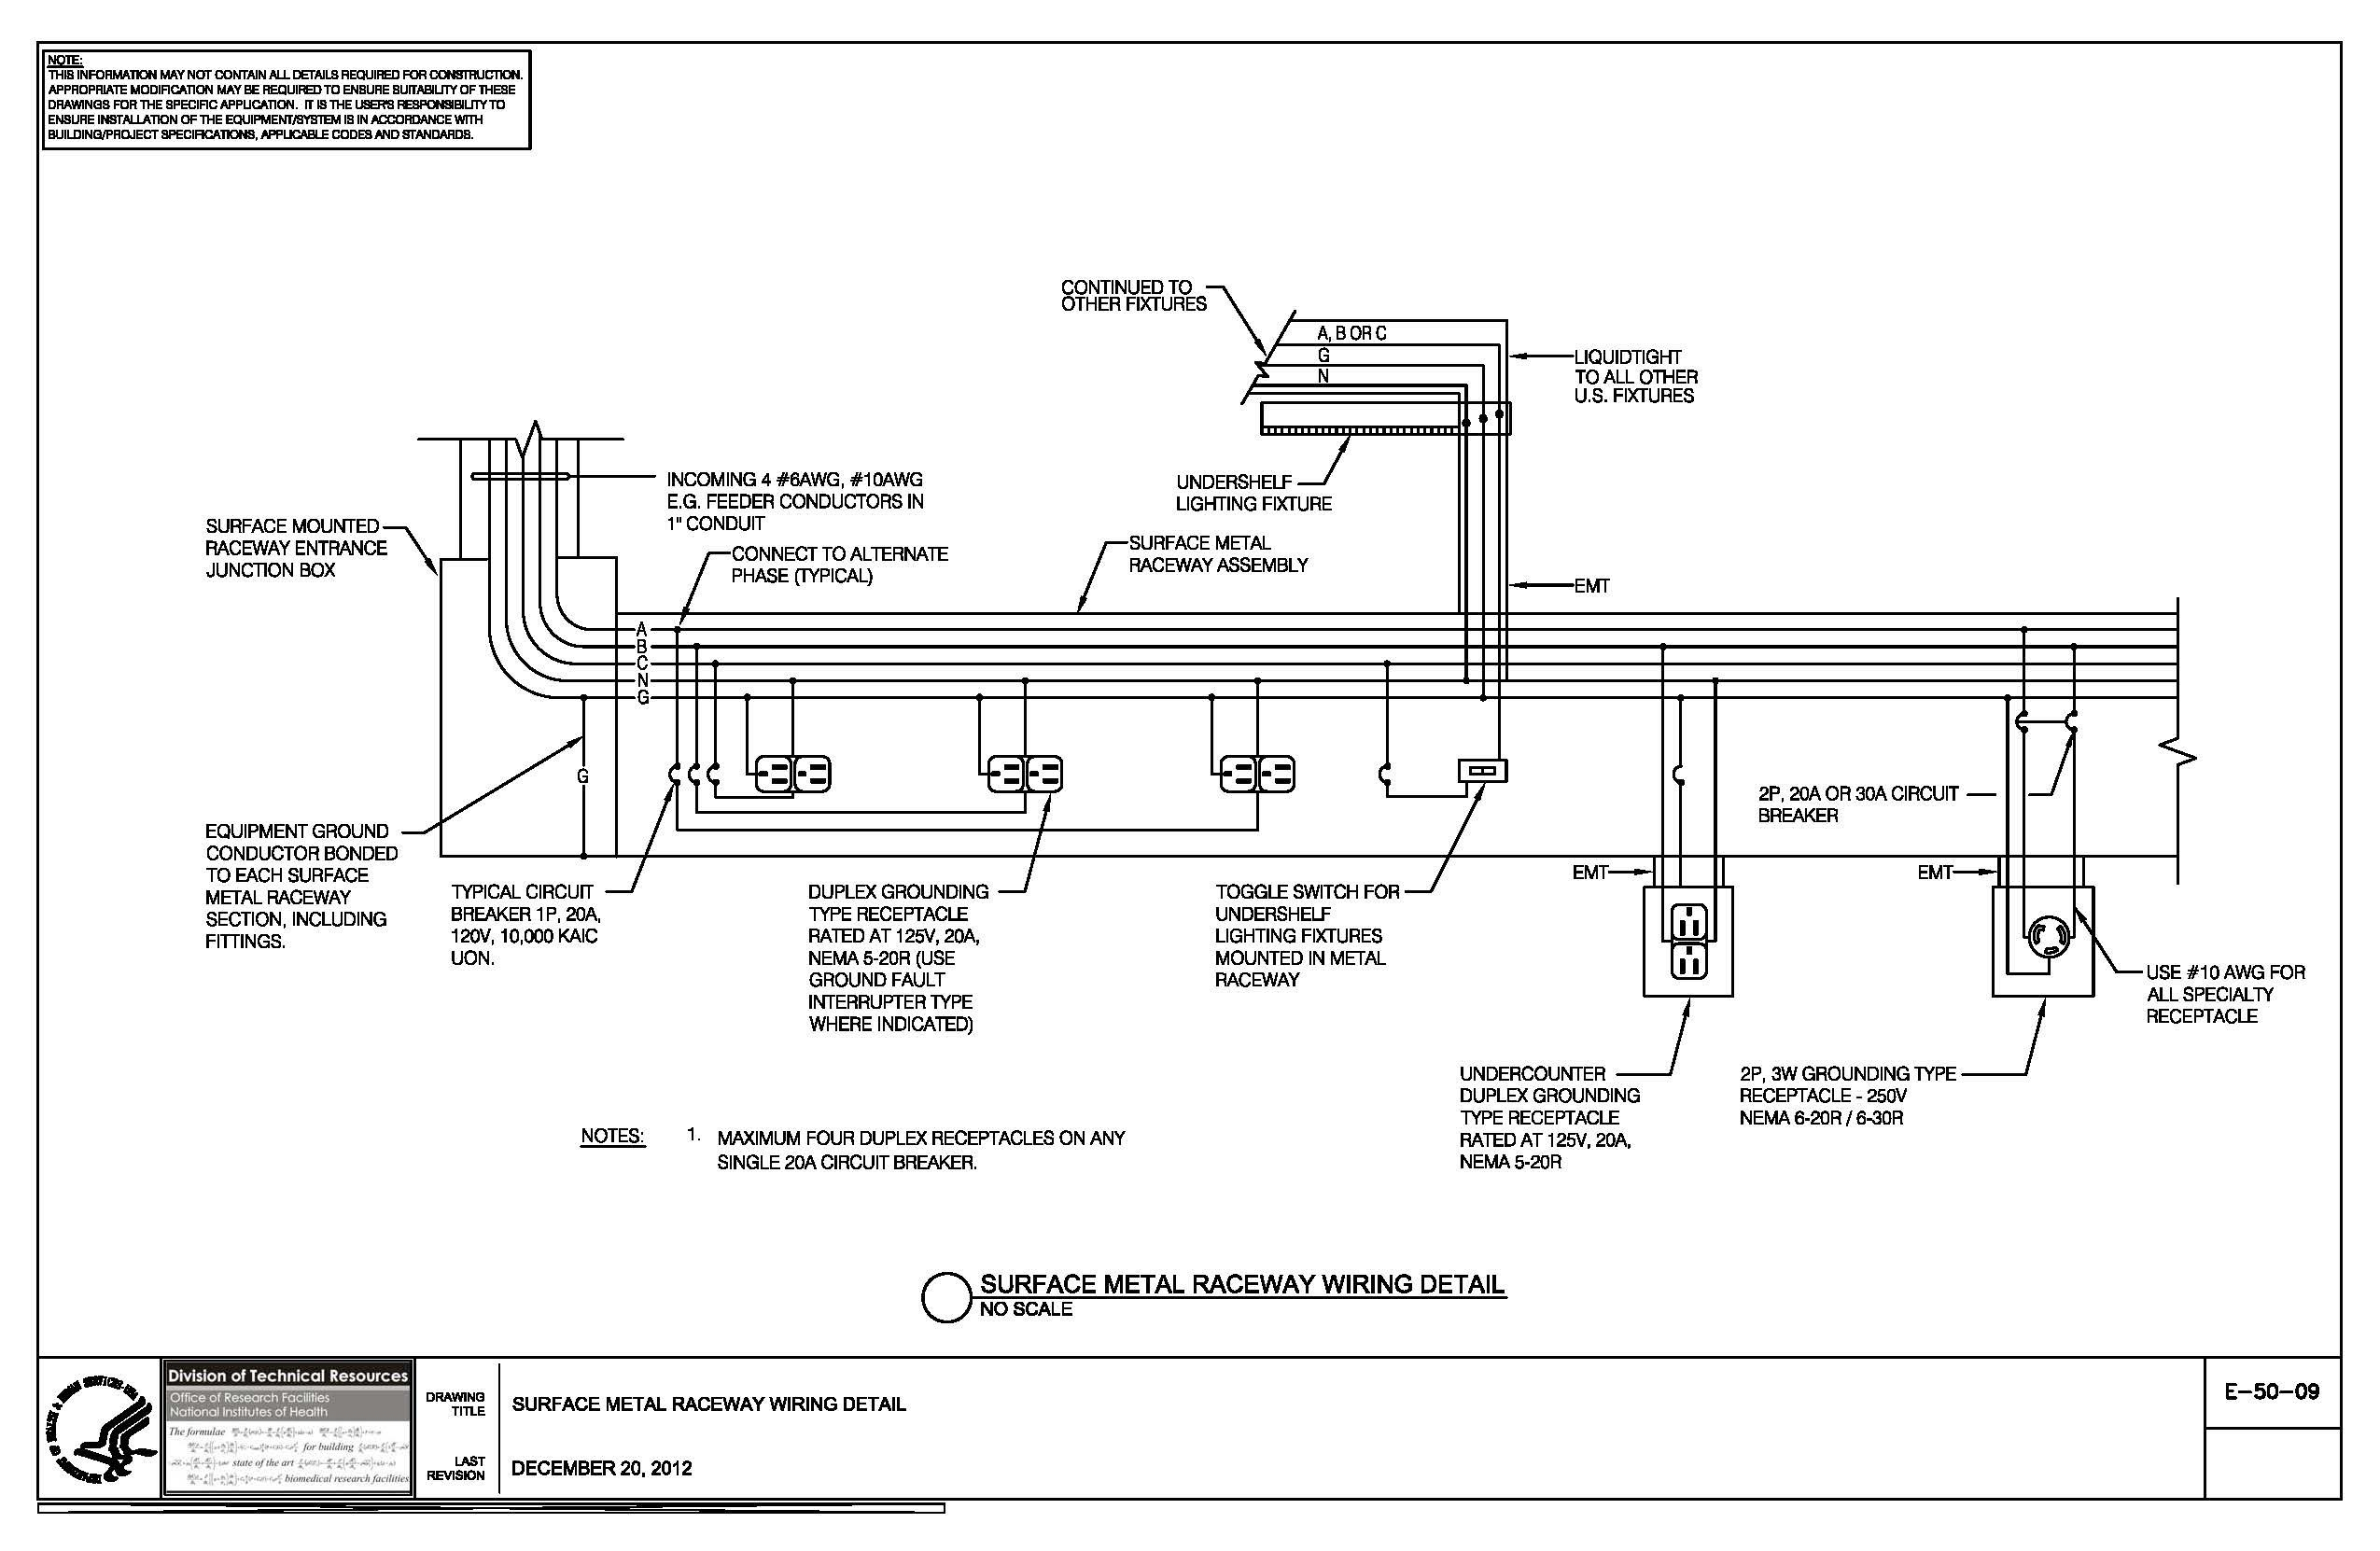 Typical Pool Light Wiring Diagram | Wiring Diagram - Pool Light Wiring Diagram